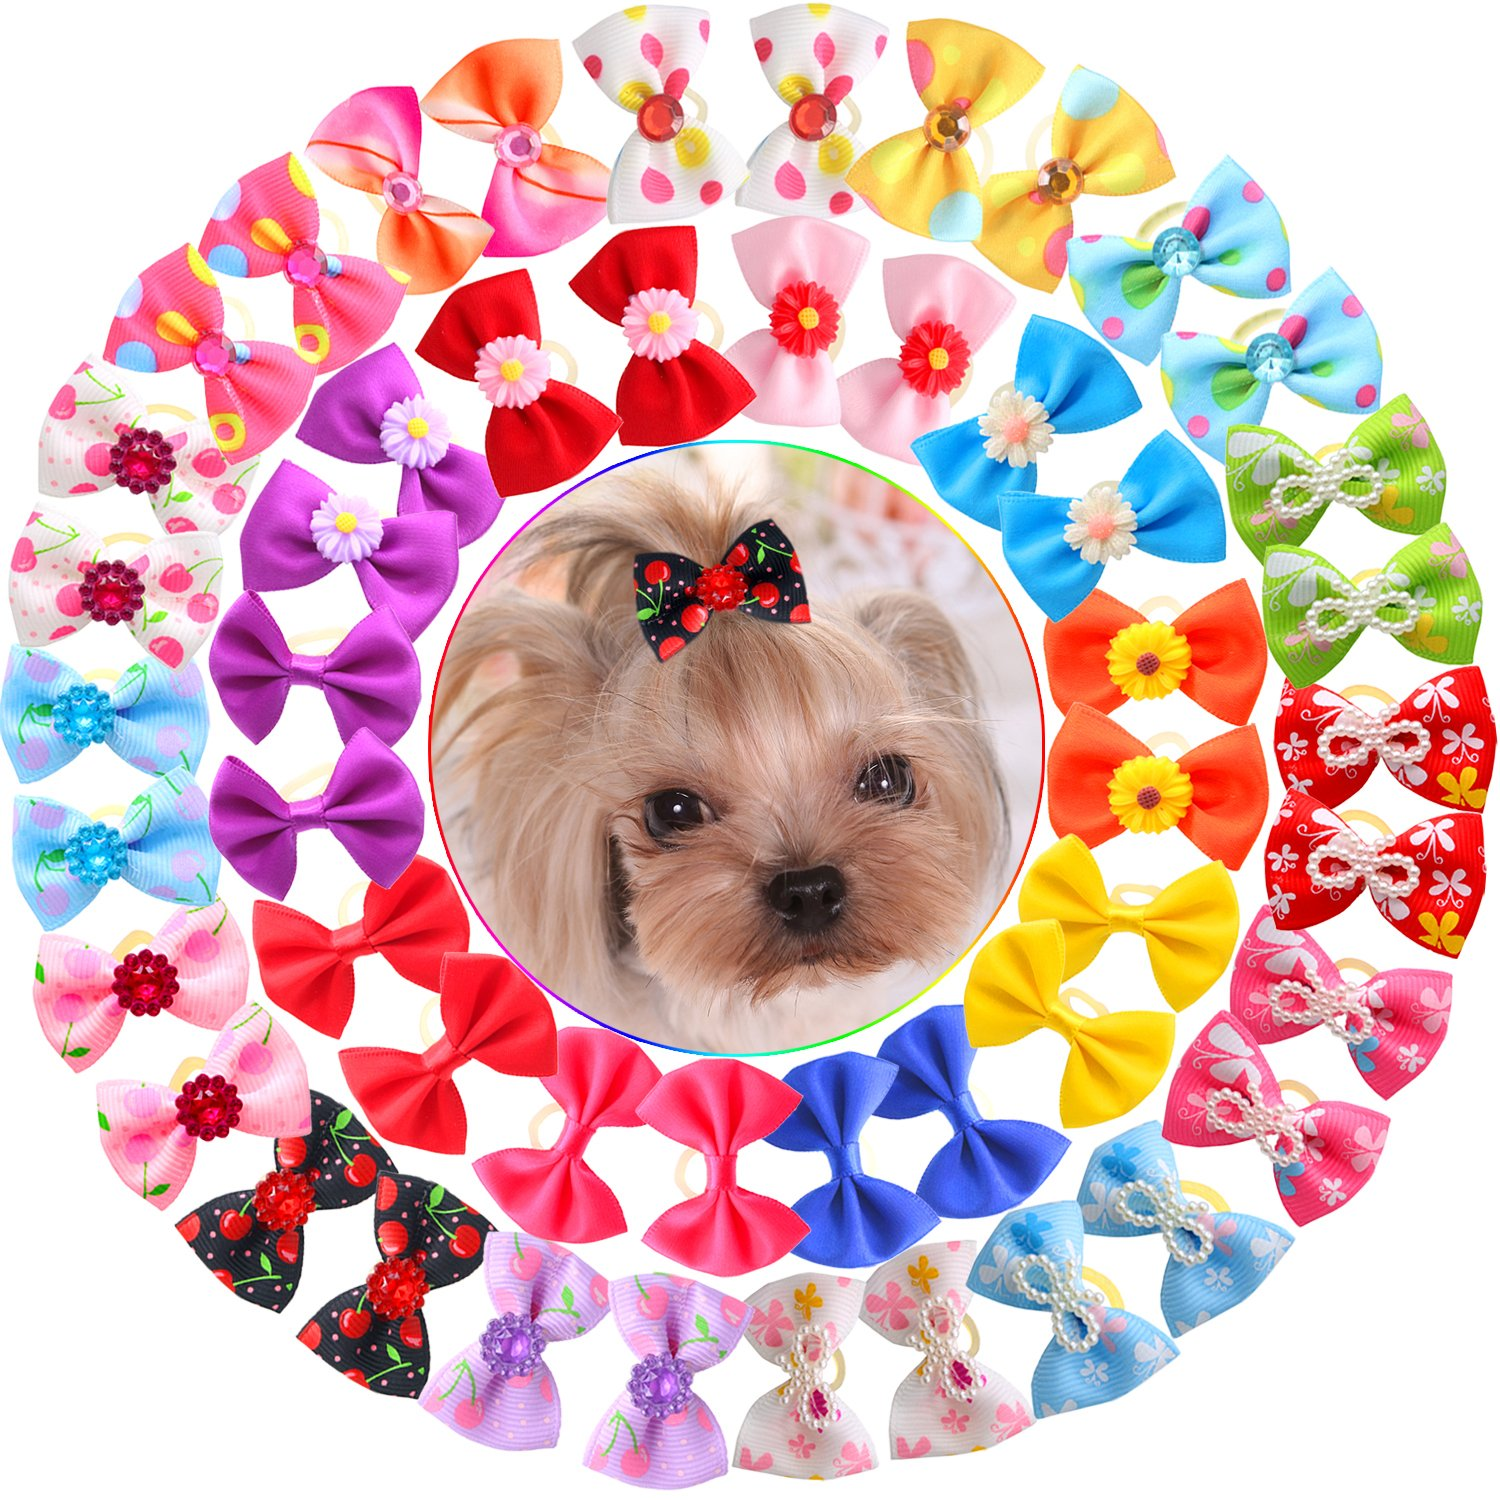 YOY 50pcs/25 Pairs Adorable Grosgrain Ribbon Pet Dog Hair Bows with Rubber Bands - Puppy Topknot Cat Kitty Doggy Grooming Hair Accessories Bow knots Headdress Flowers Set for Groomer by YOY (Image #2)